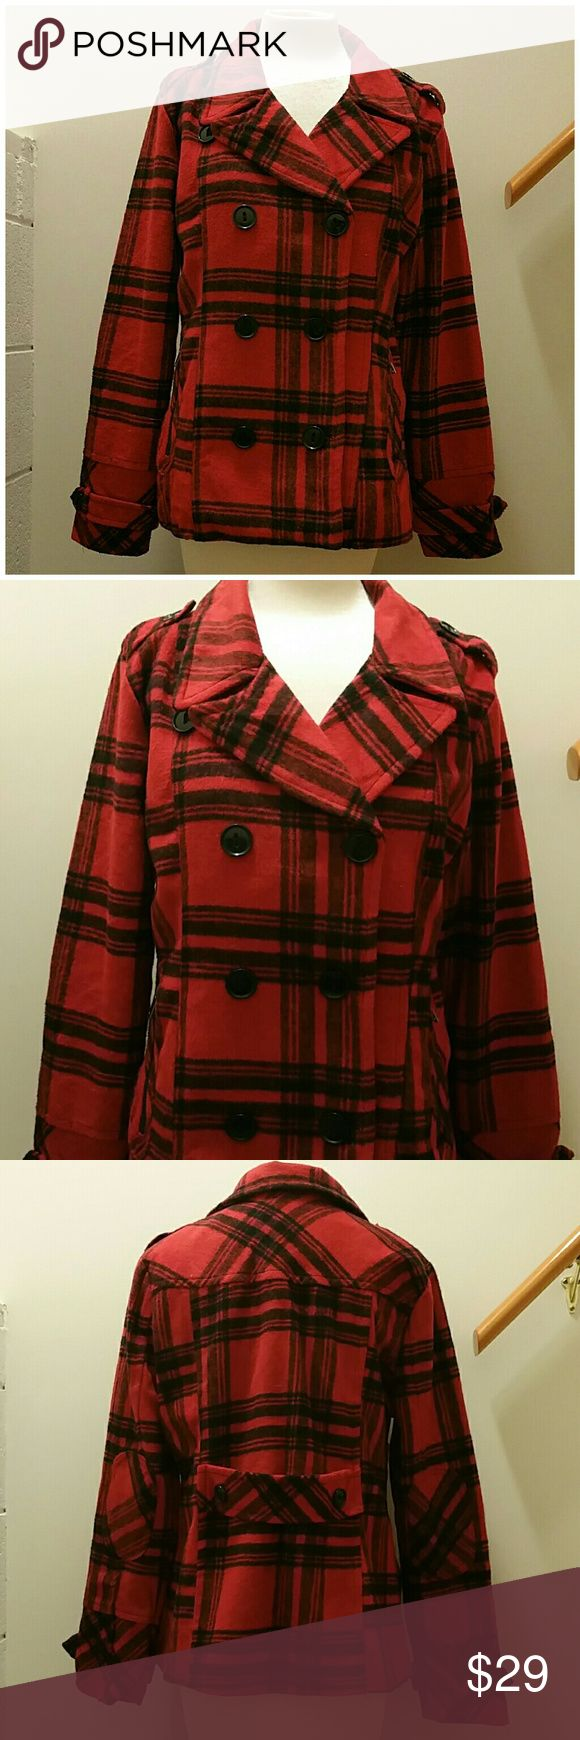 "Plaid wool blend pea coat. Size XL Excellent condition. Barely worn. Lost weight, too big for me now. Double breasted pea coat style. Red/black plaid. Wool blend. Lined, large zippered pockets. Measures approx. 27"" in length, sleeves measure approx. 25"". Juniors XL, bust measures approx. 34/36"". Fits a ladies size 10. No flaws. Dollhouse Jackets & Coats Pea Coats"